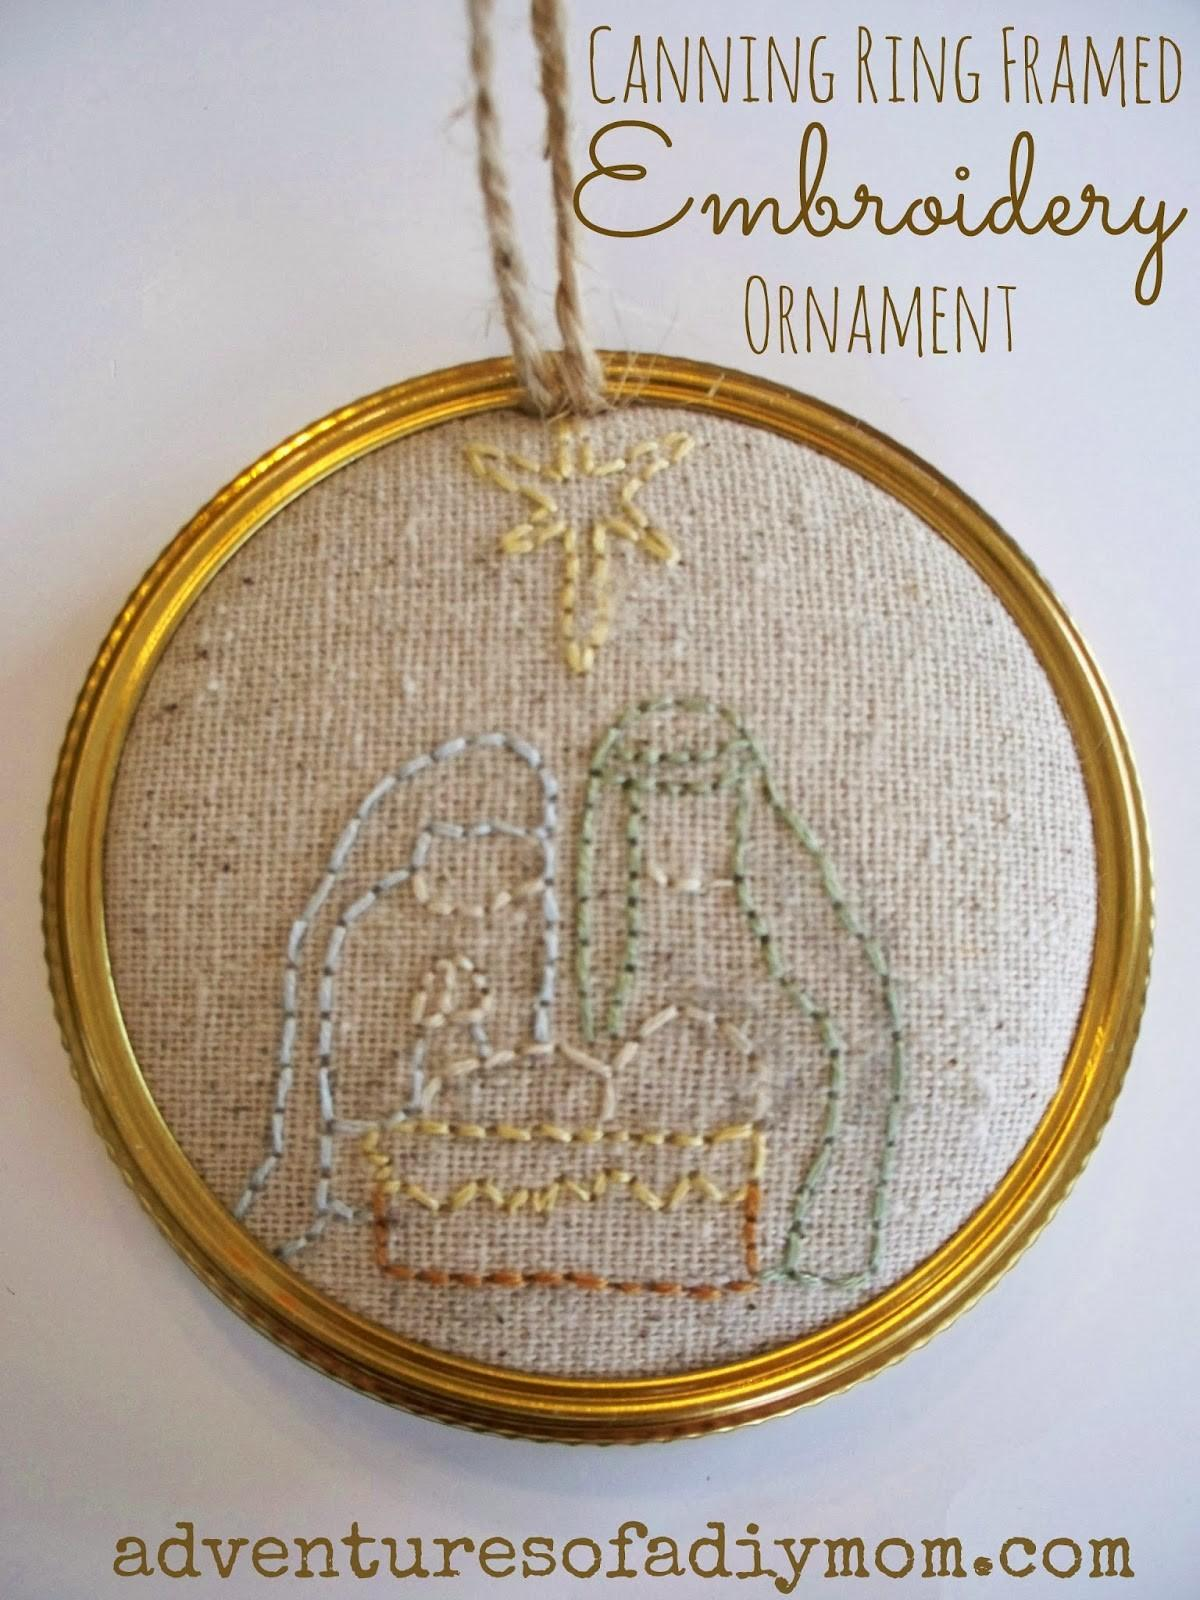 Canning Ring Framed Embroidered Baby Jesus Ornament